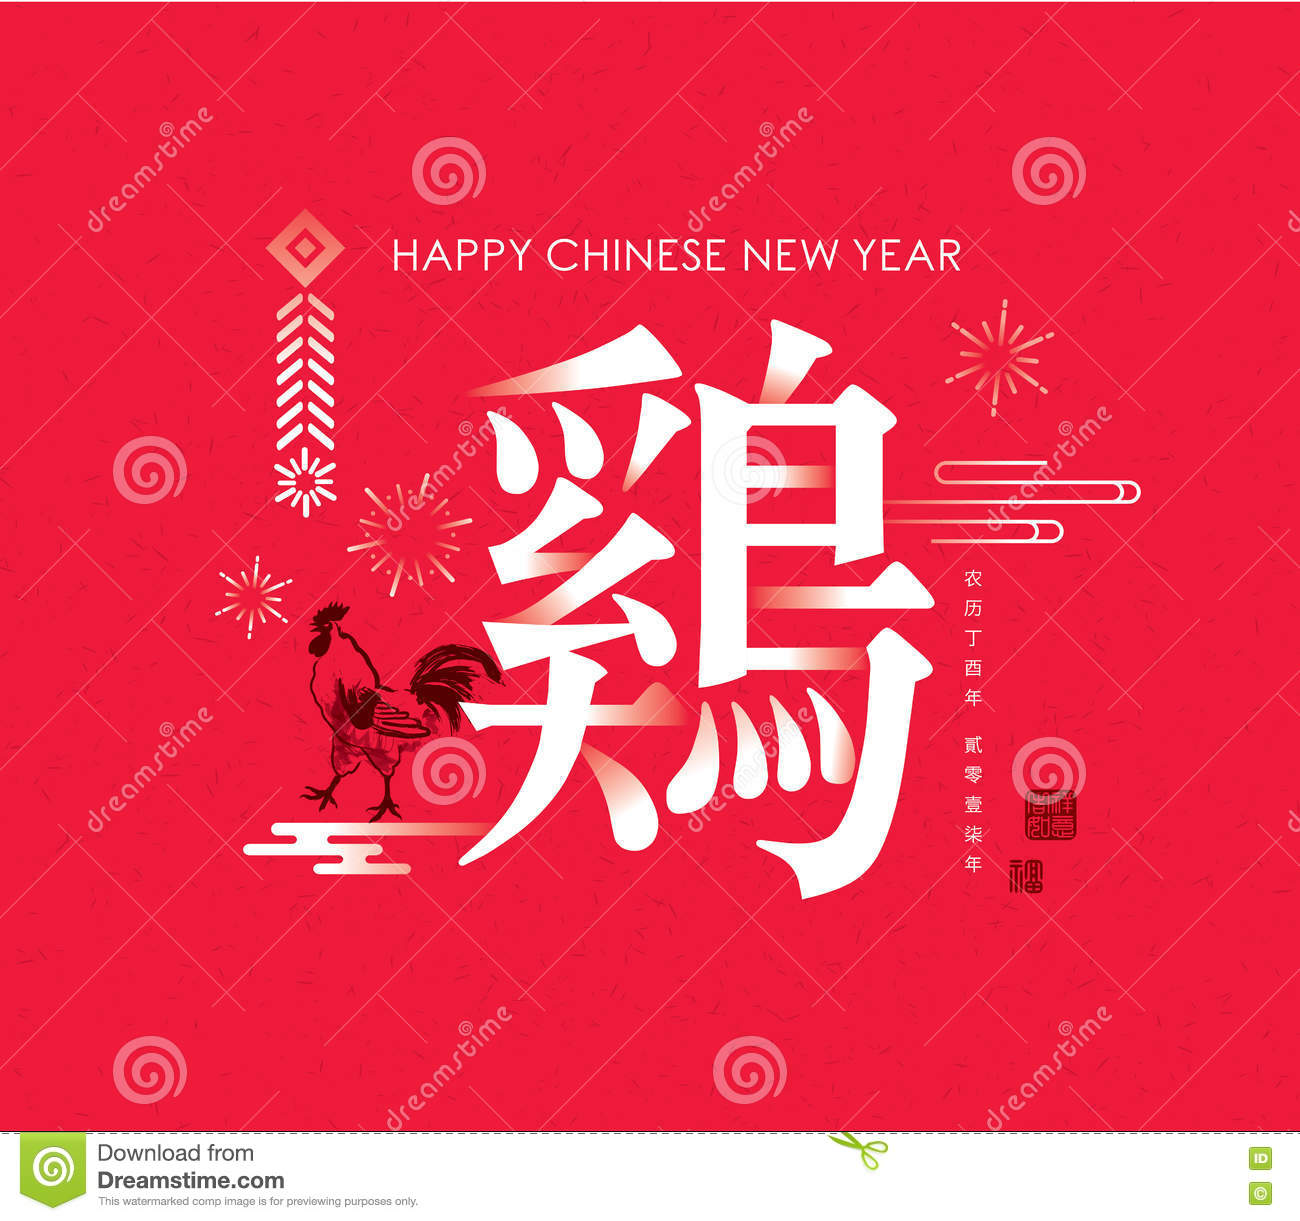 Happy Chinese New Year 2017! Stock Vector - Illustration of modern ...